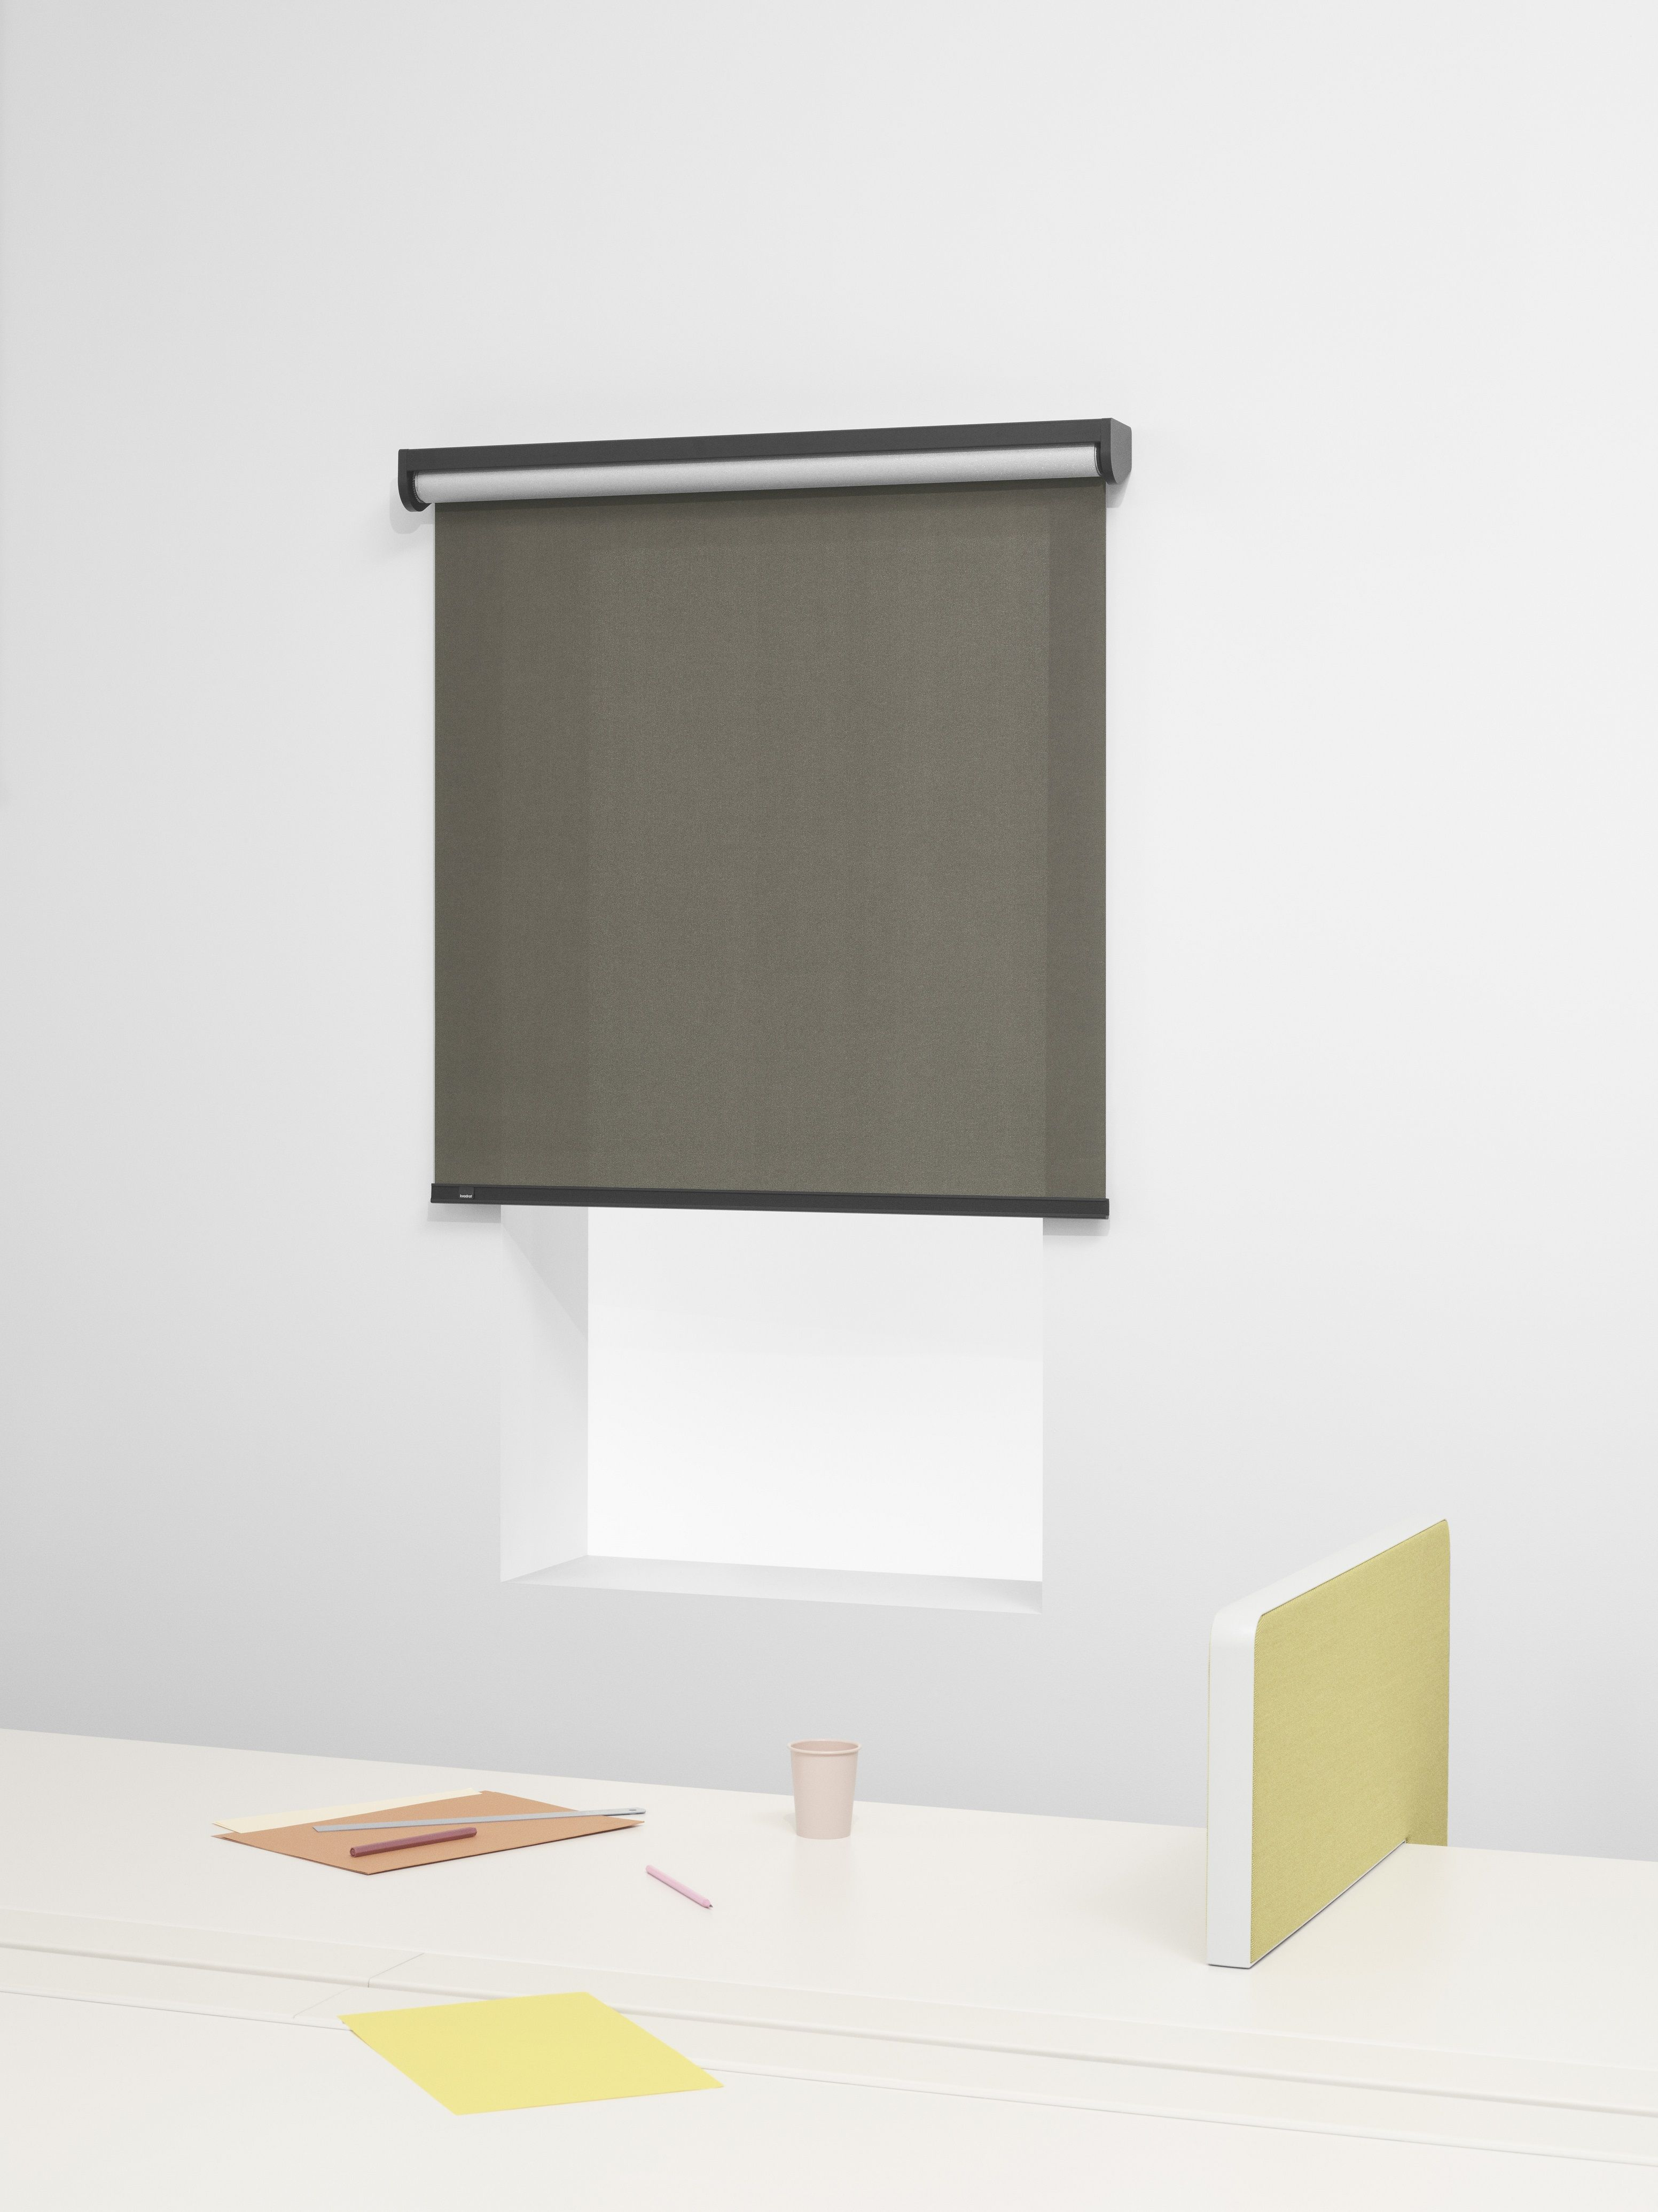 French Designers Ronan U0026 Erwan Bouroullec Have Put Their Spin On The Humble  Roller Blind Using Textiles The Duo Created For Danish Brand Kvadrat.